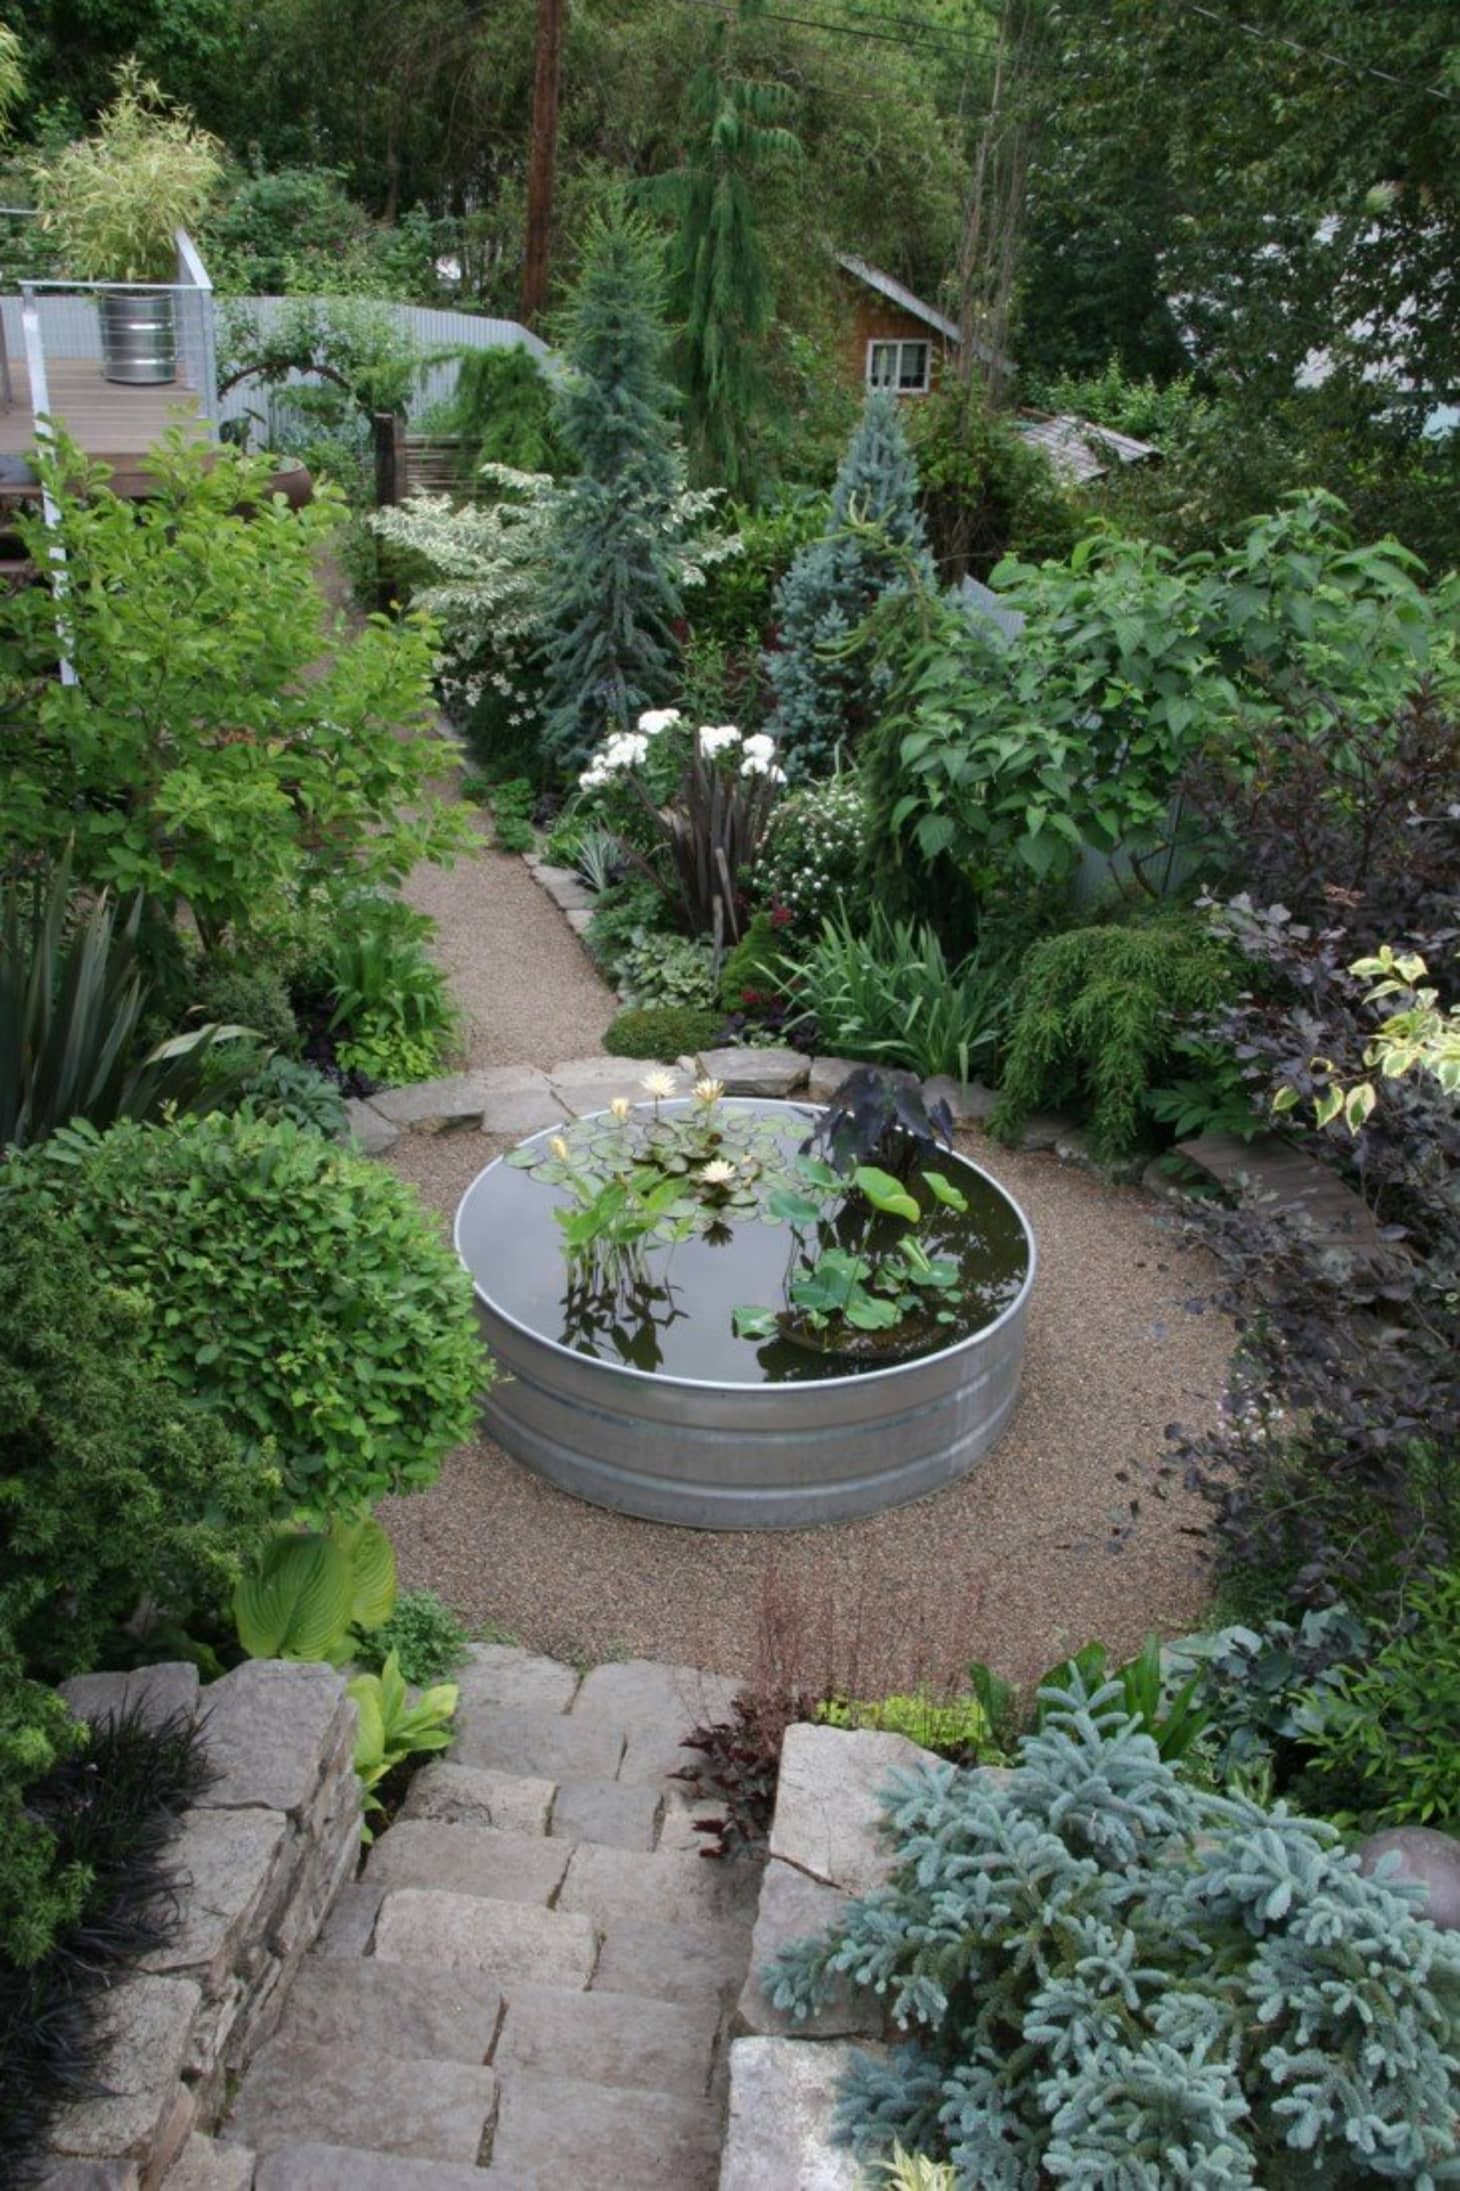 Outdoor Garden With Circular Galvanized Tub Converted Into A Water Feature.